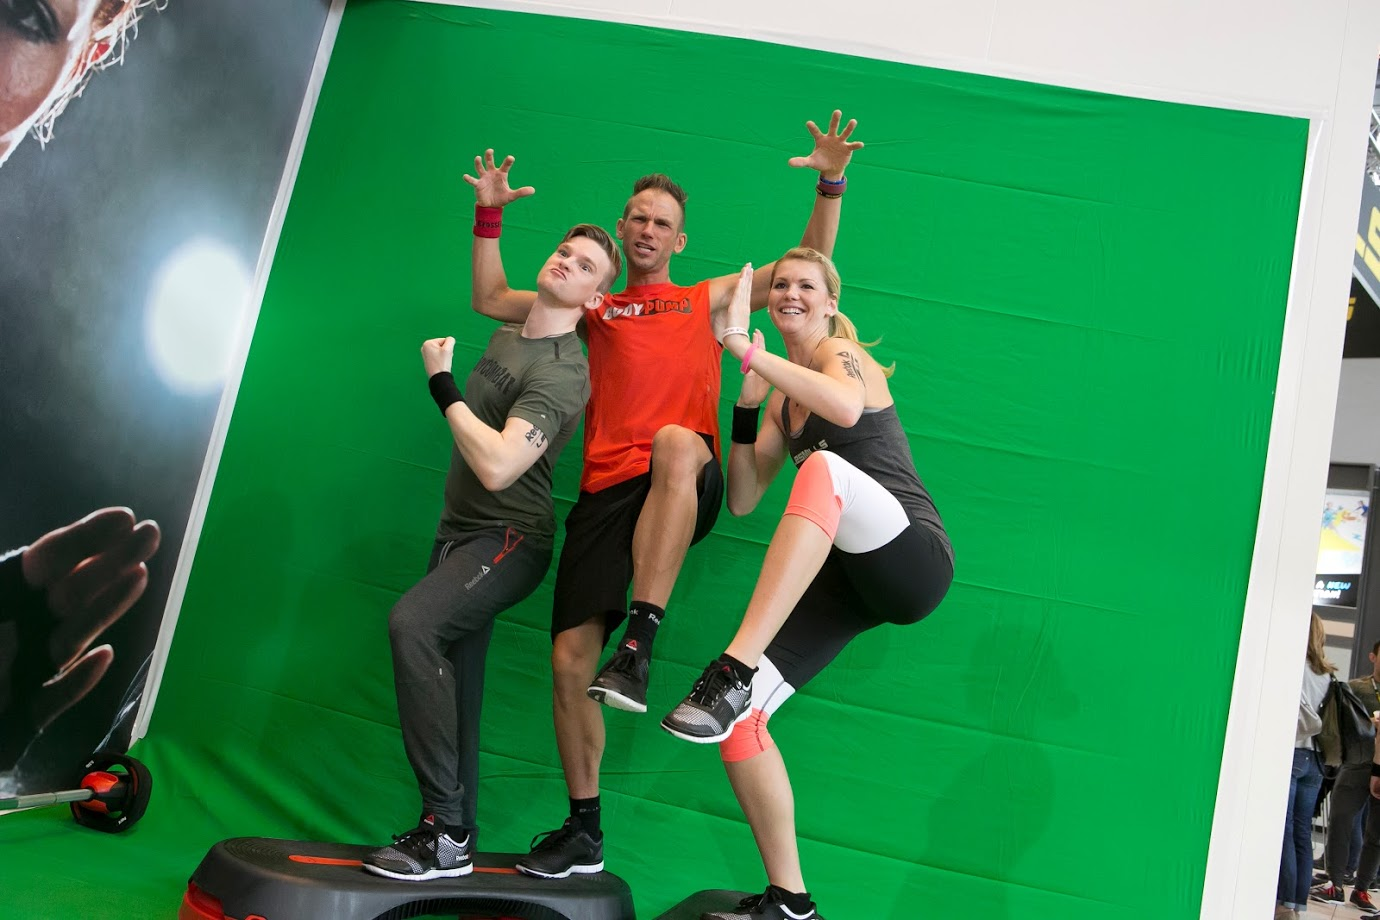 Greenscreen fototeam - chromakey - sbs fotomarketing 003